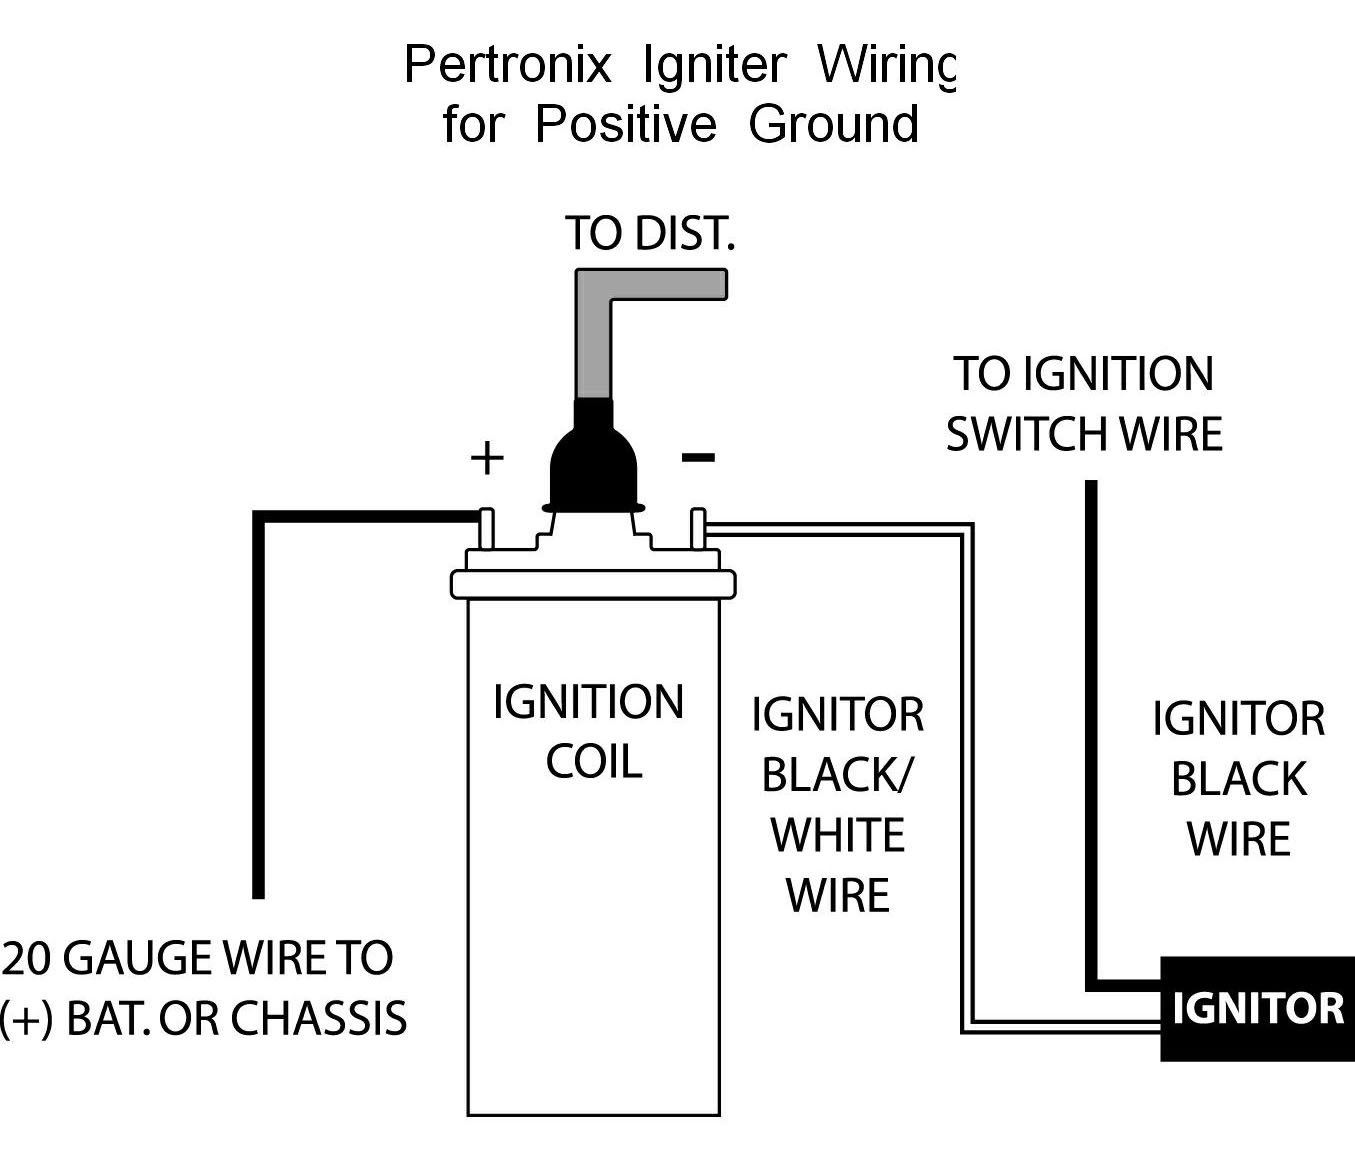 PerPosGndWiring pertronix positive ground wiring compu fire ignition wiring diagram at soozxer.org